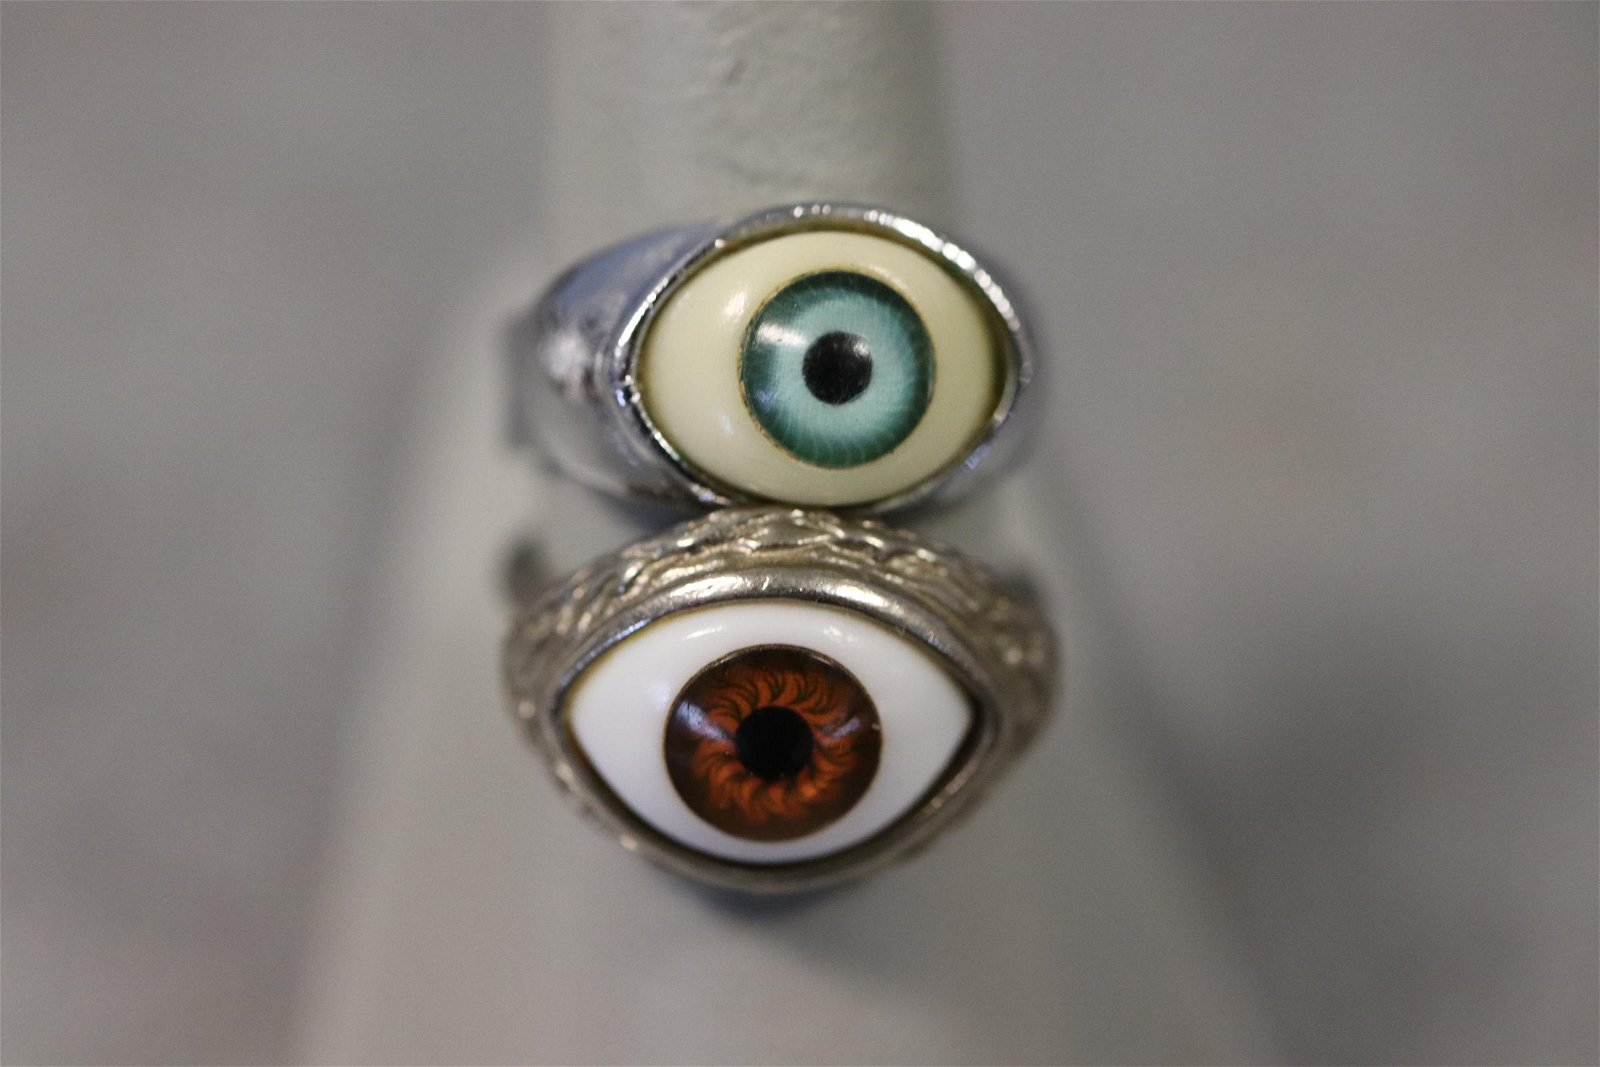 2 Vintage Ceramic Eye Ball Rings